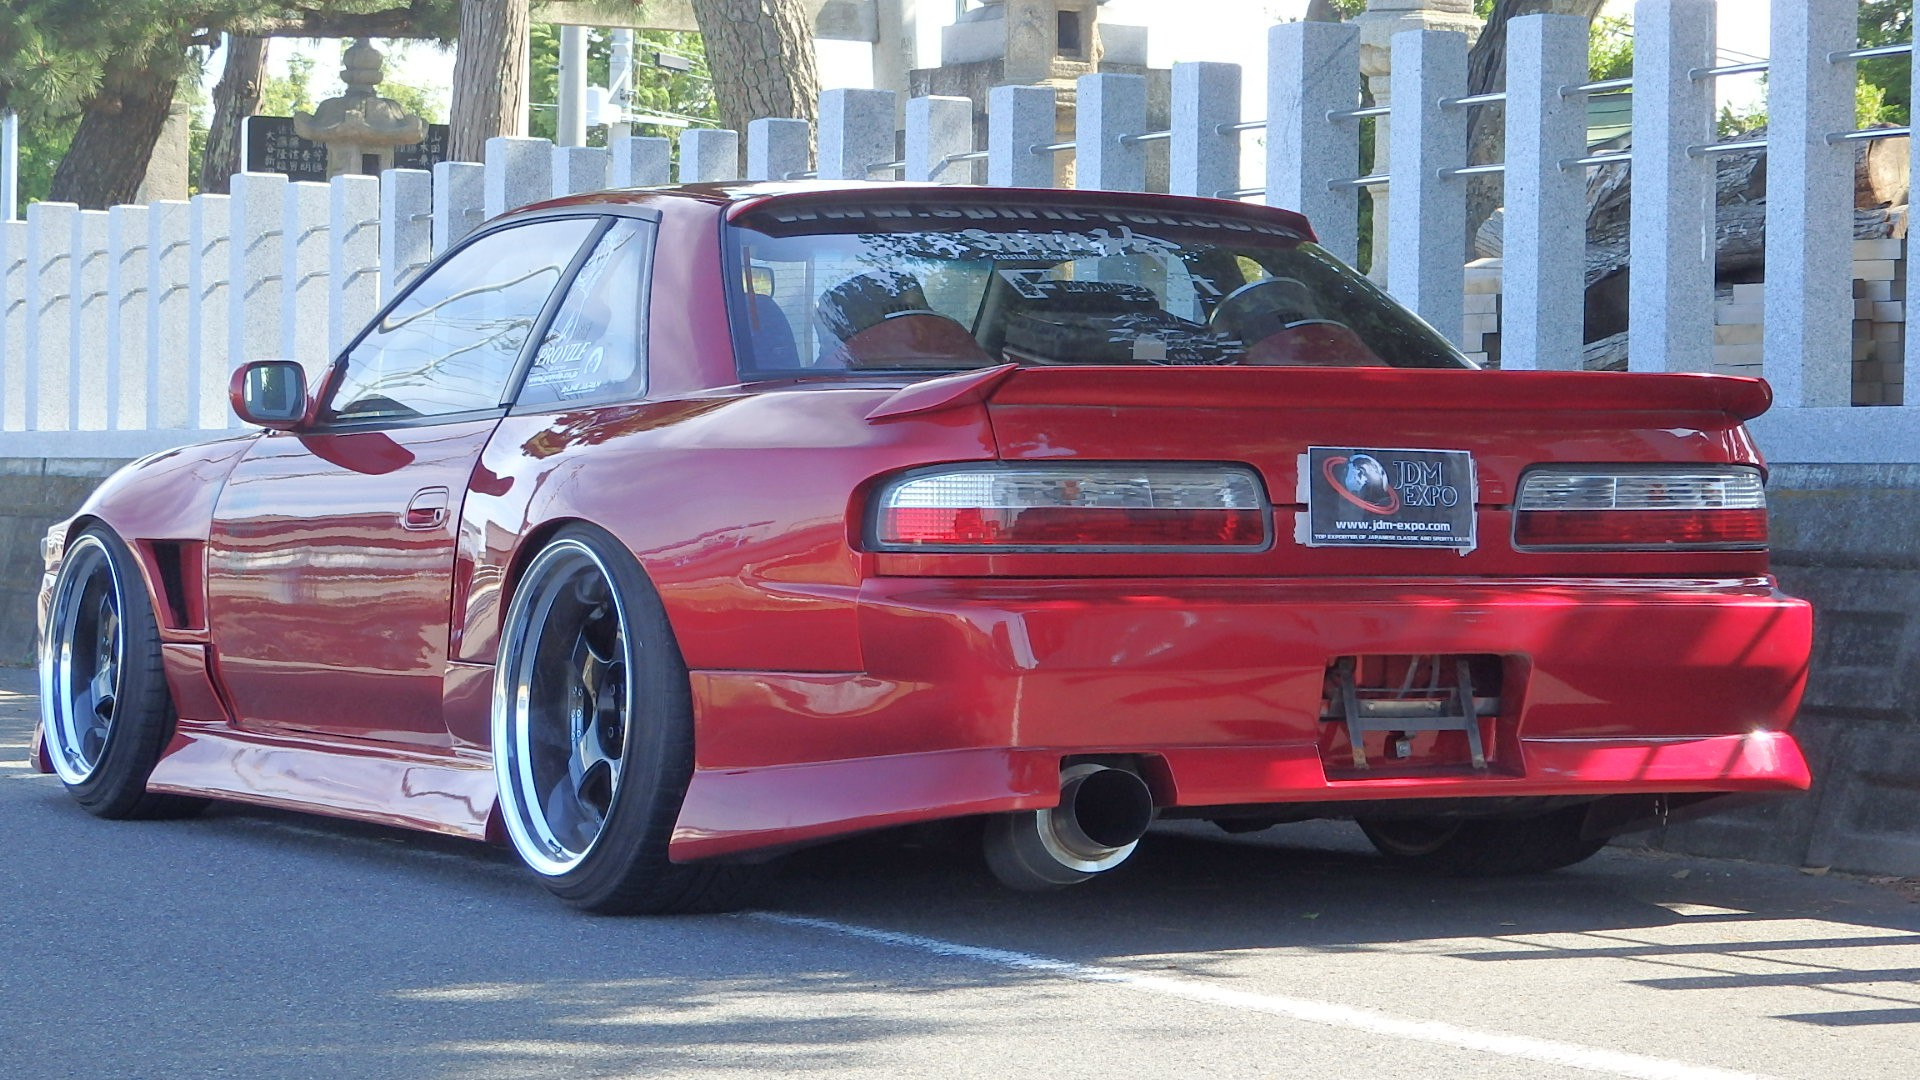 Jdm Cars For Sale >> Nissan Silvia S13 for sale Import JDM cars to USA Canada ...